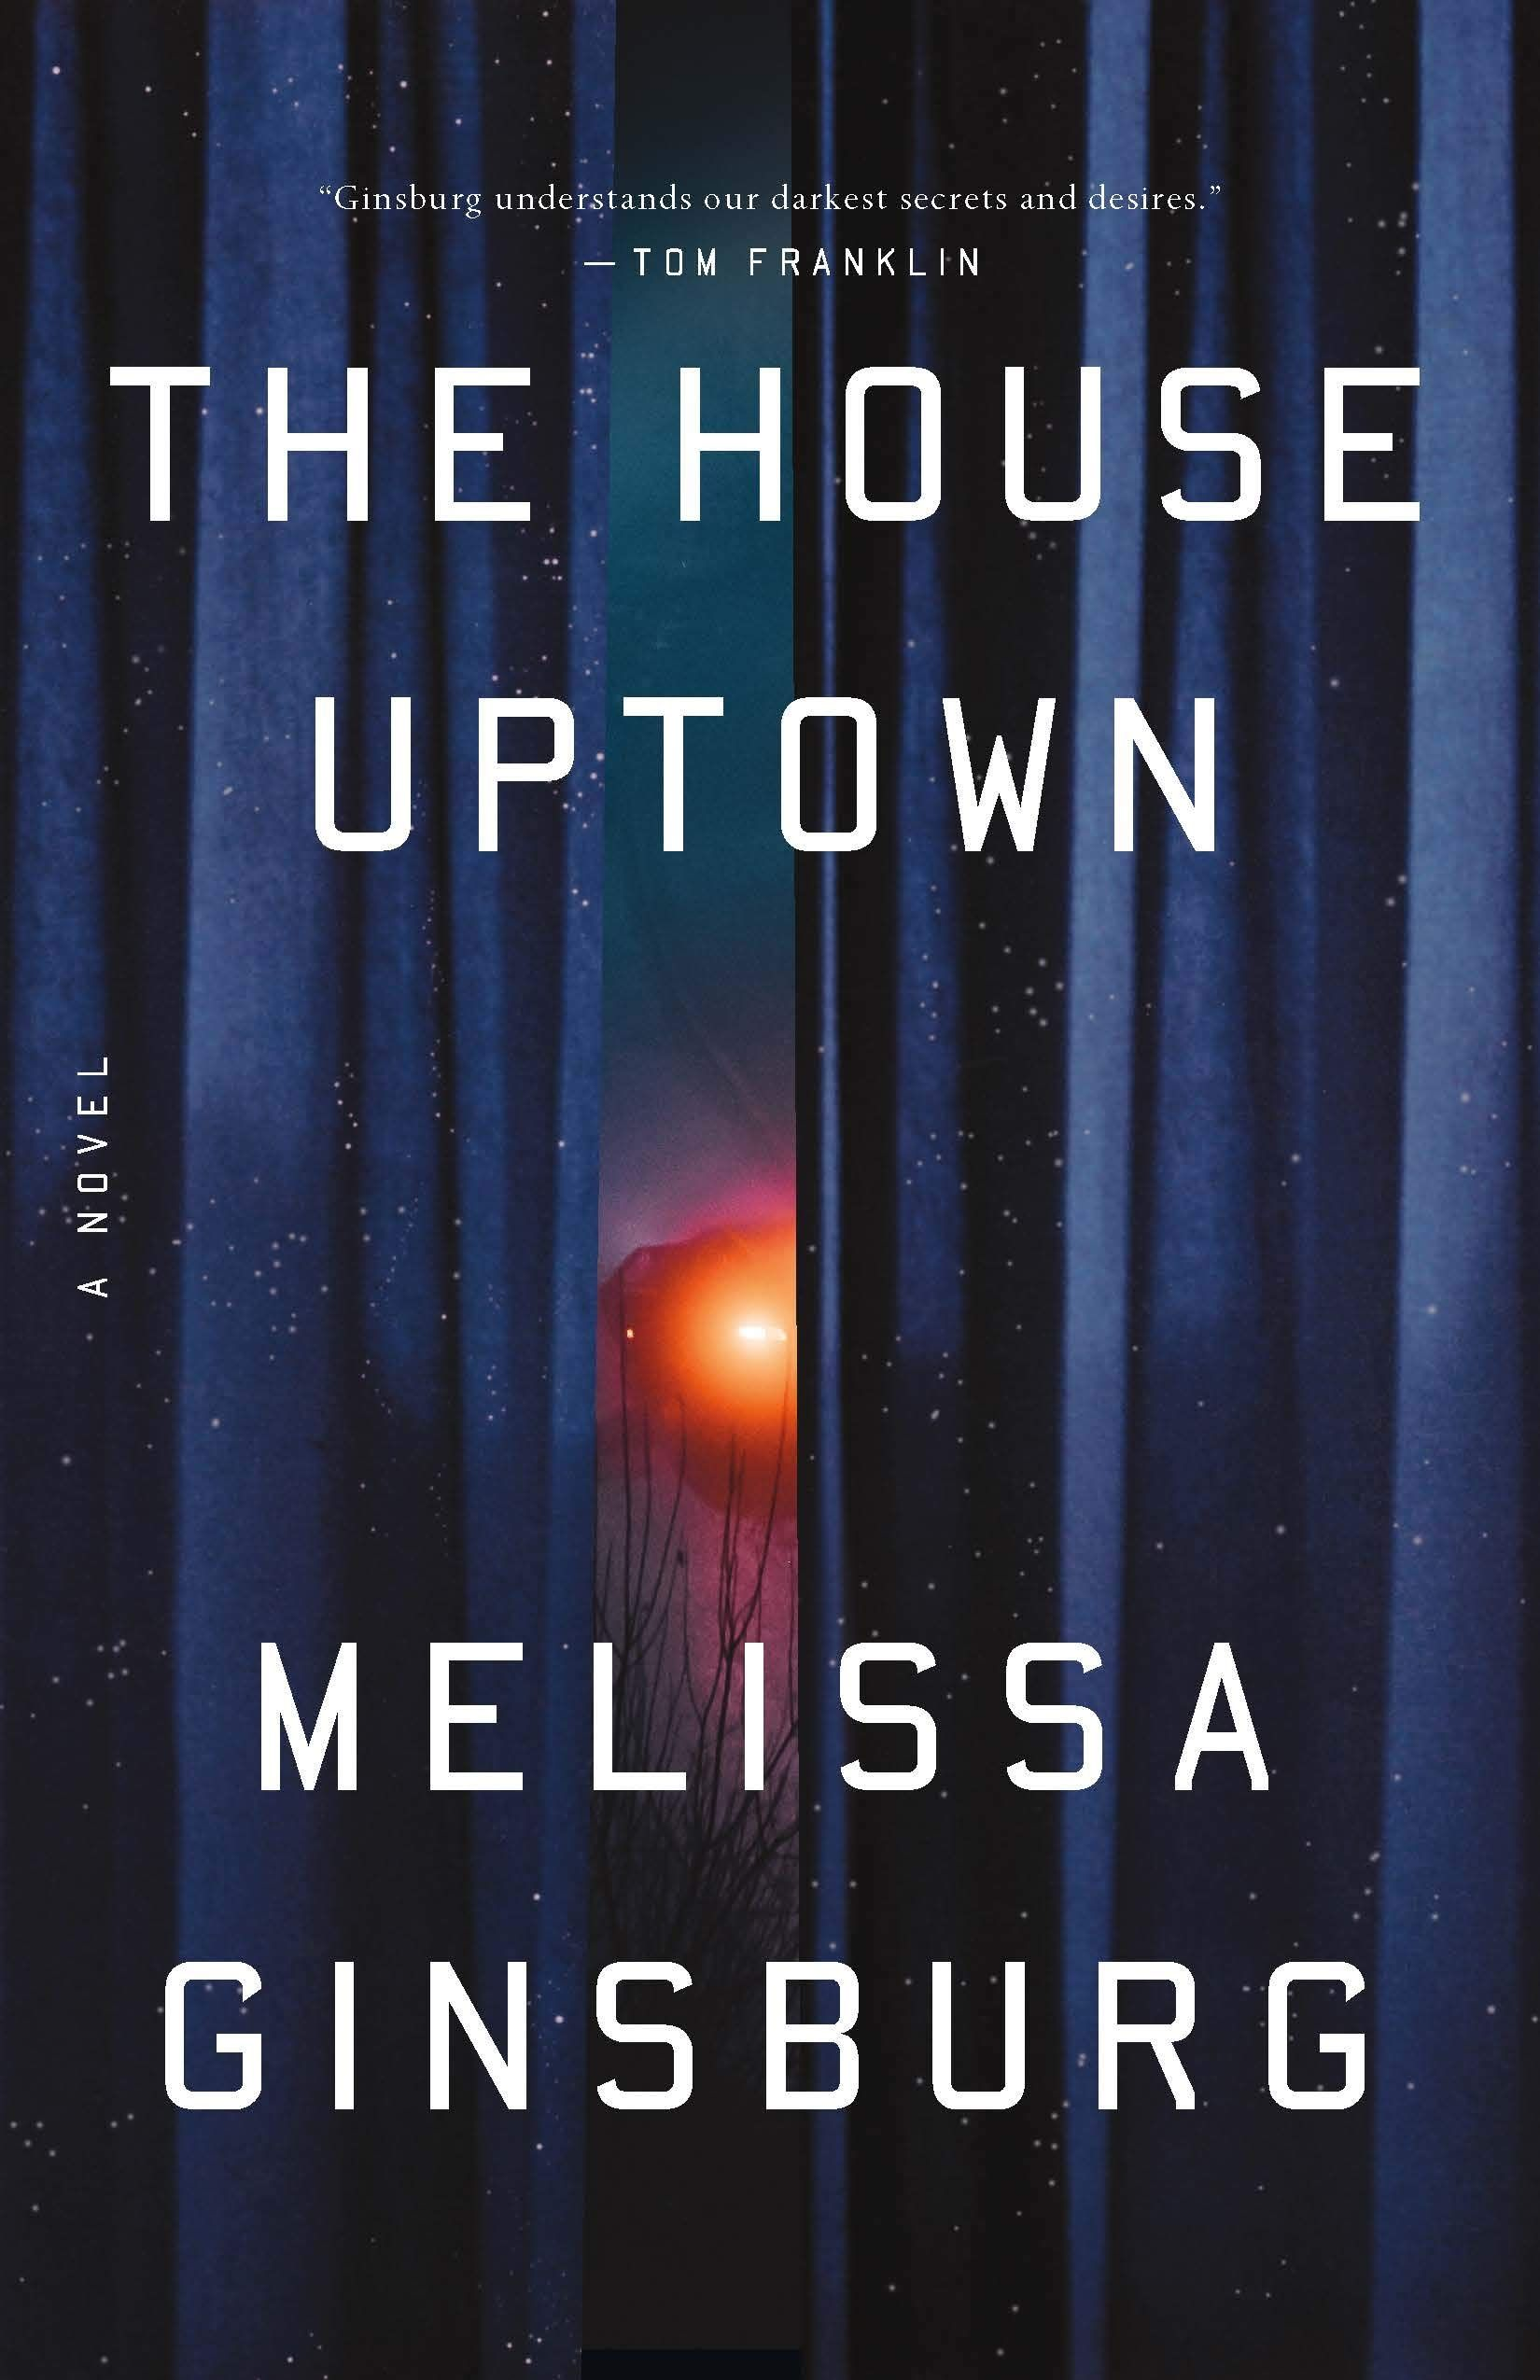 Pdf The House Uptown By Melissa Ginsburg Good Thriller Books Thriller Books Books To Read Online